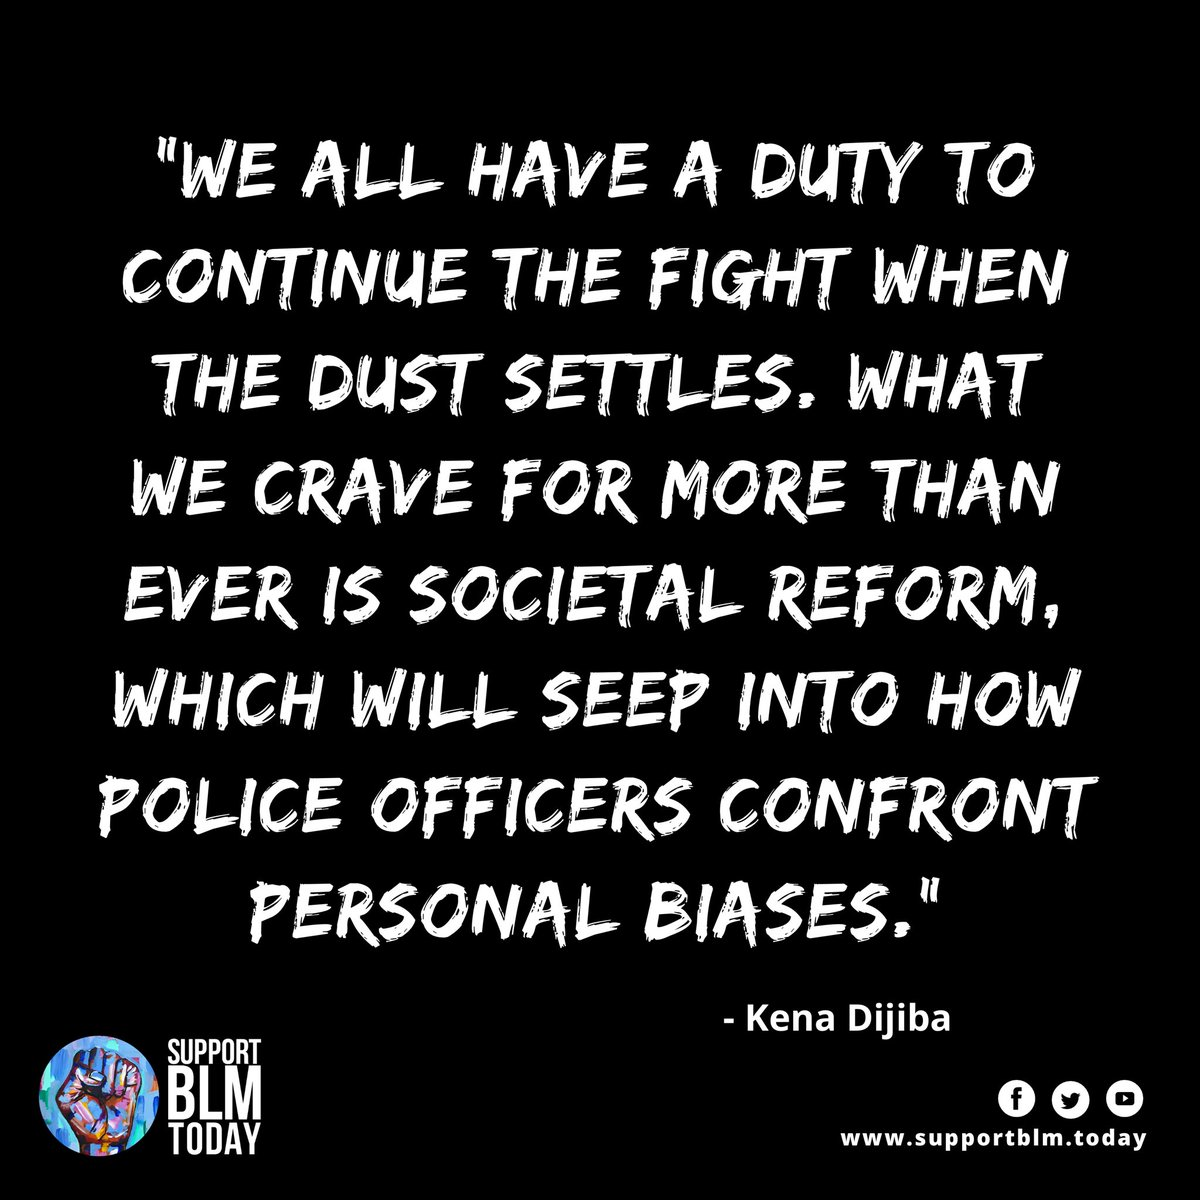 When the dust settles, keep moving    #blacklivesmatter #blmquotes #blm #blm2021 #equality #racism #solidarity #blacklives #mlk #blmmovement #nojusticenopeace #blacklivesmatterplaza #blmprotest #blmfist